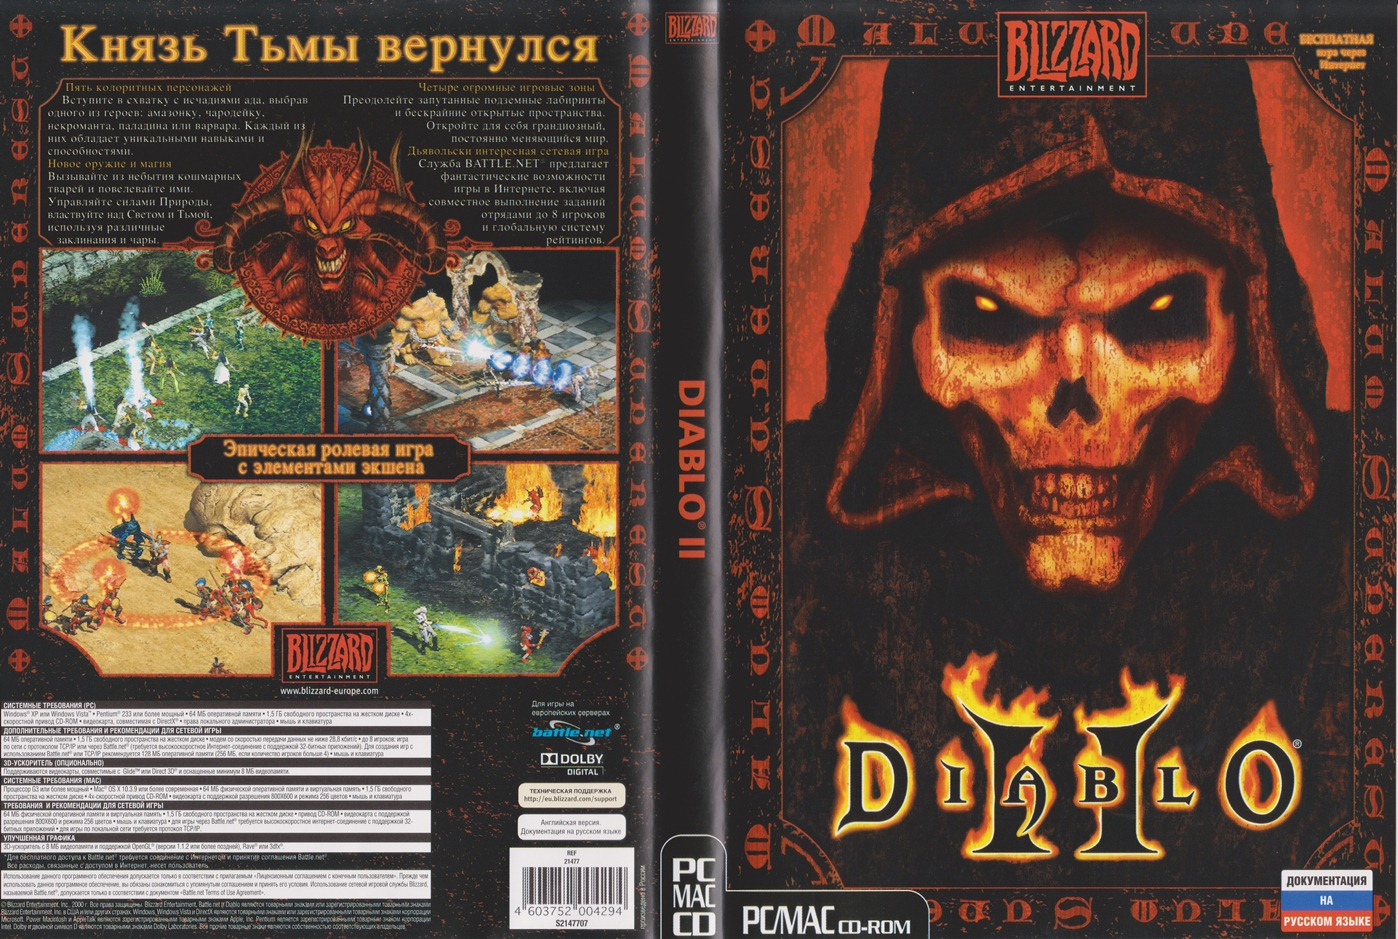 Diablo 2 - Battle.net - Photo - Reg Free - Worldwide